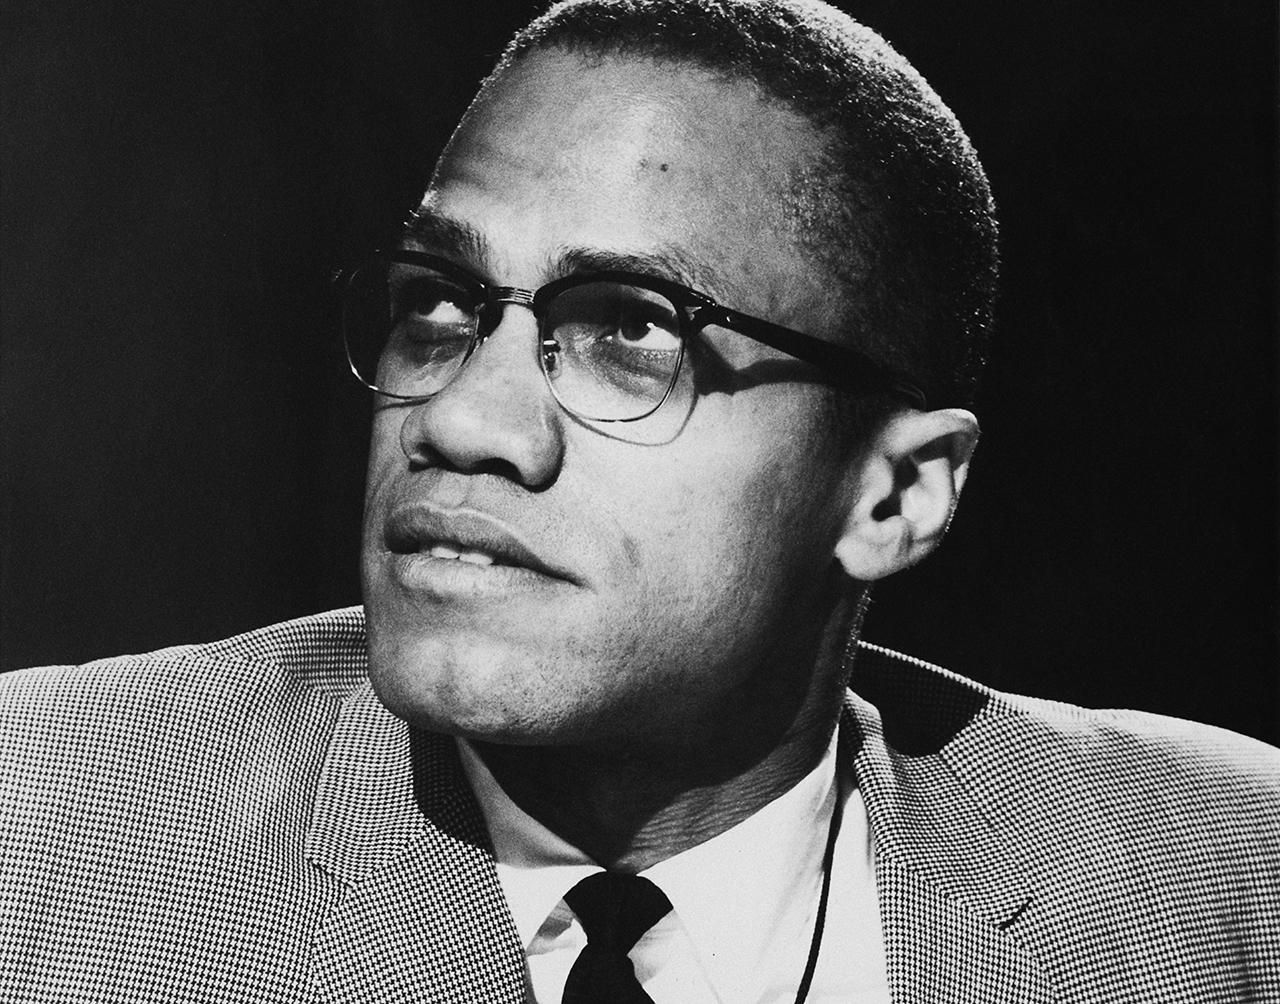 Malcolm X - Biography of the Civil Rights Era